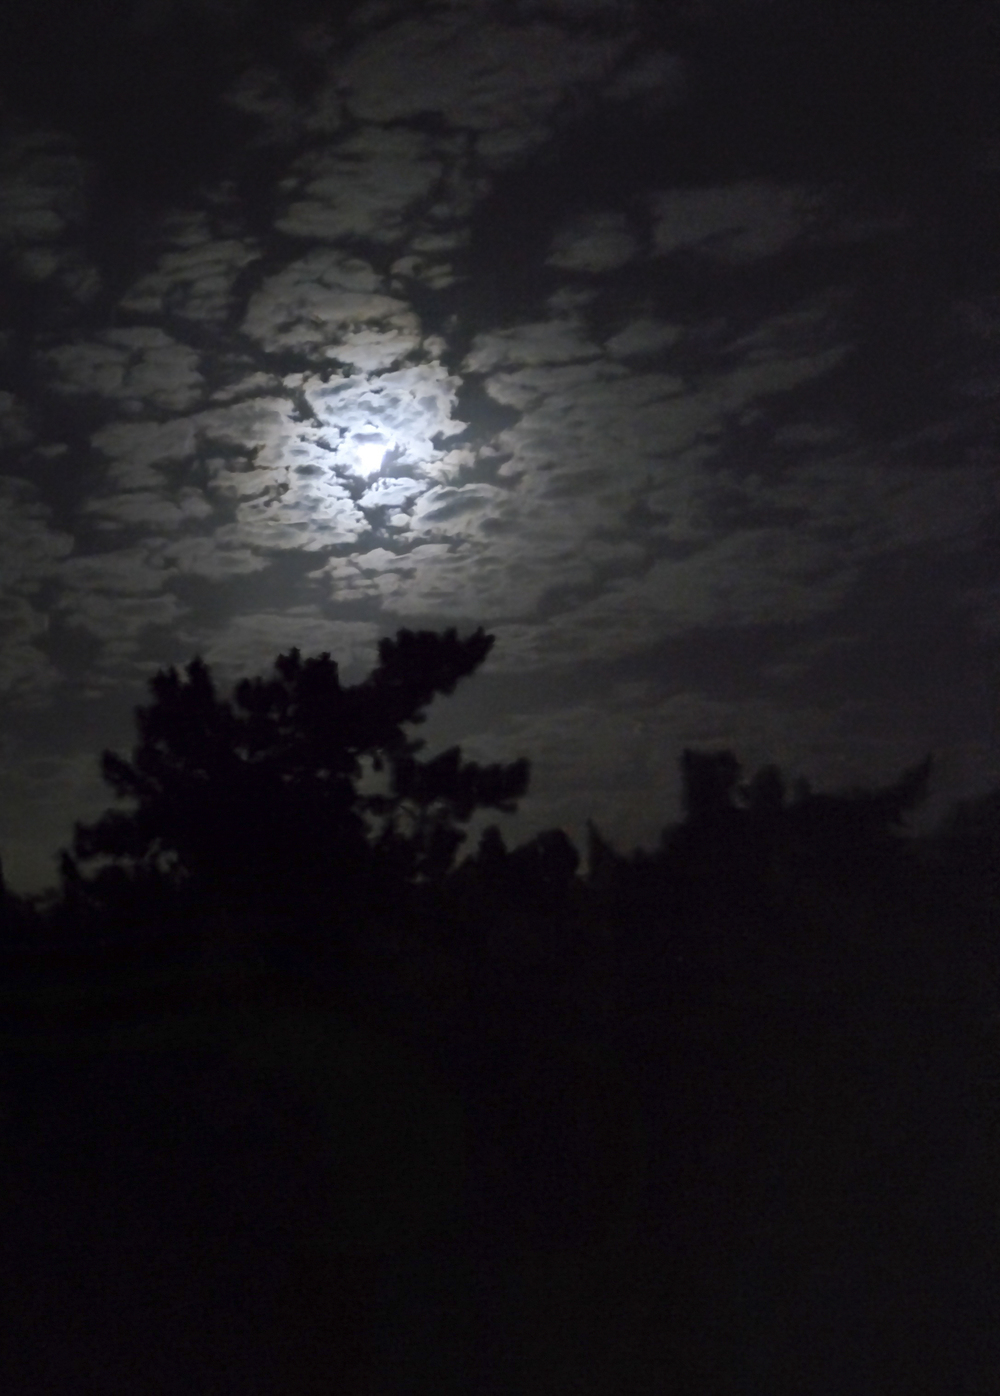 Chelsea Hipley   - The night felt peaceful and serene with the beautiful moonlight coming through the clouds. A great ending to another great weekend.